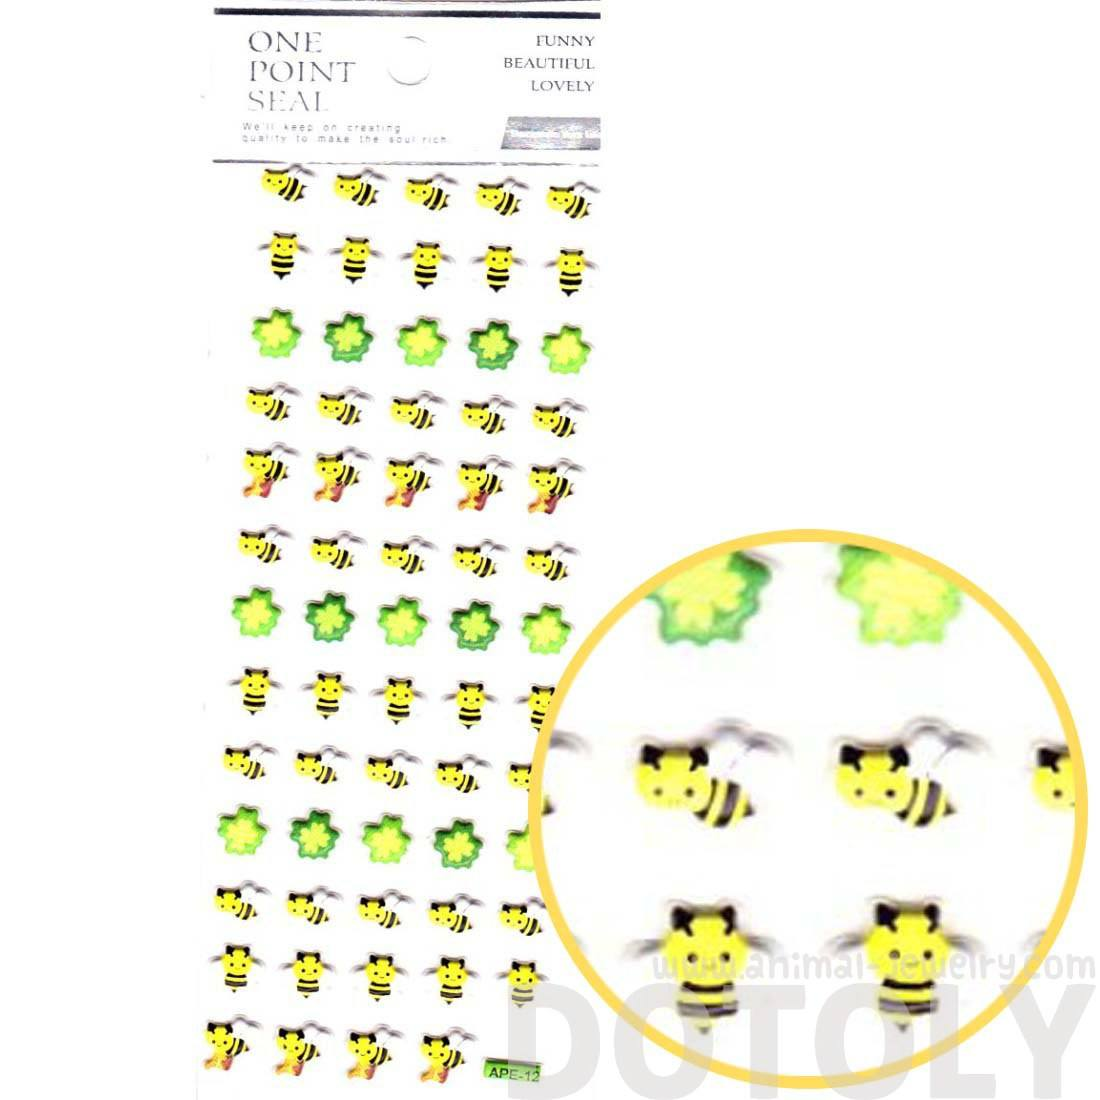 Bumble Bees and Four Leaf Clovers Shaped Puffy Stickers